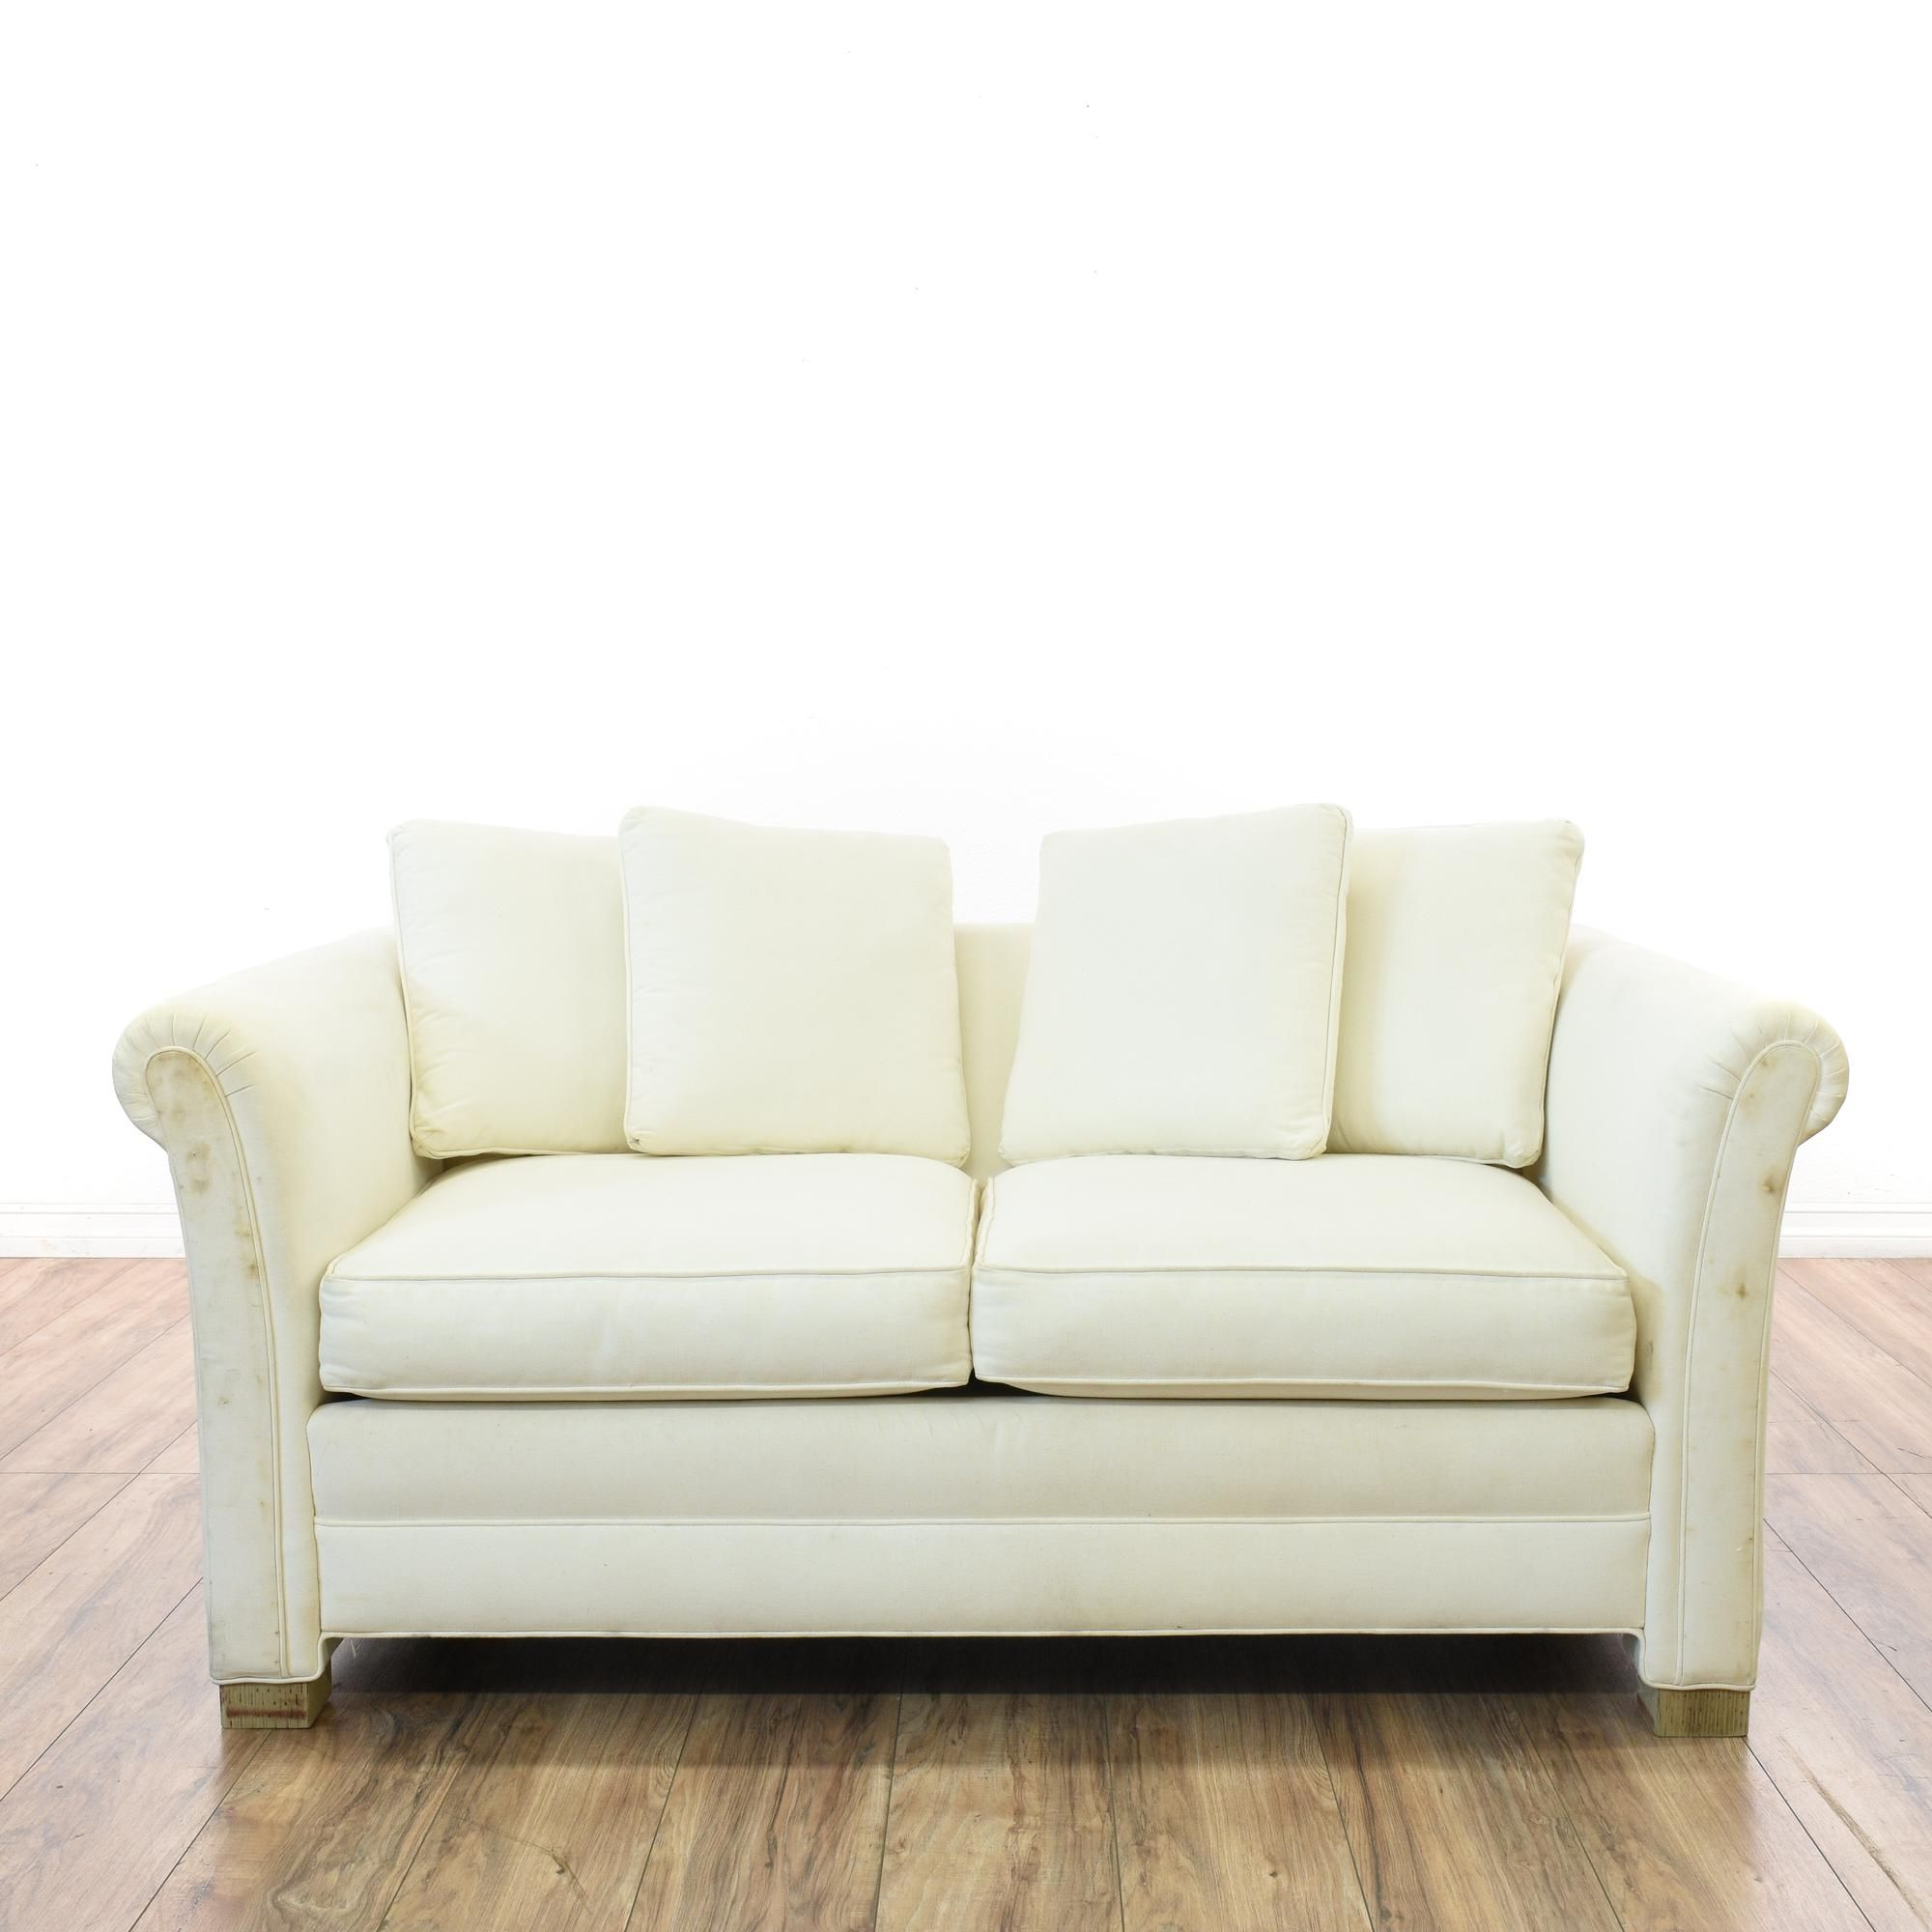 White Loveseat Couch Sofa Couch And Loveseat White Loveseat Love Seat